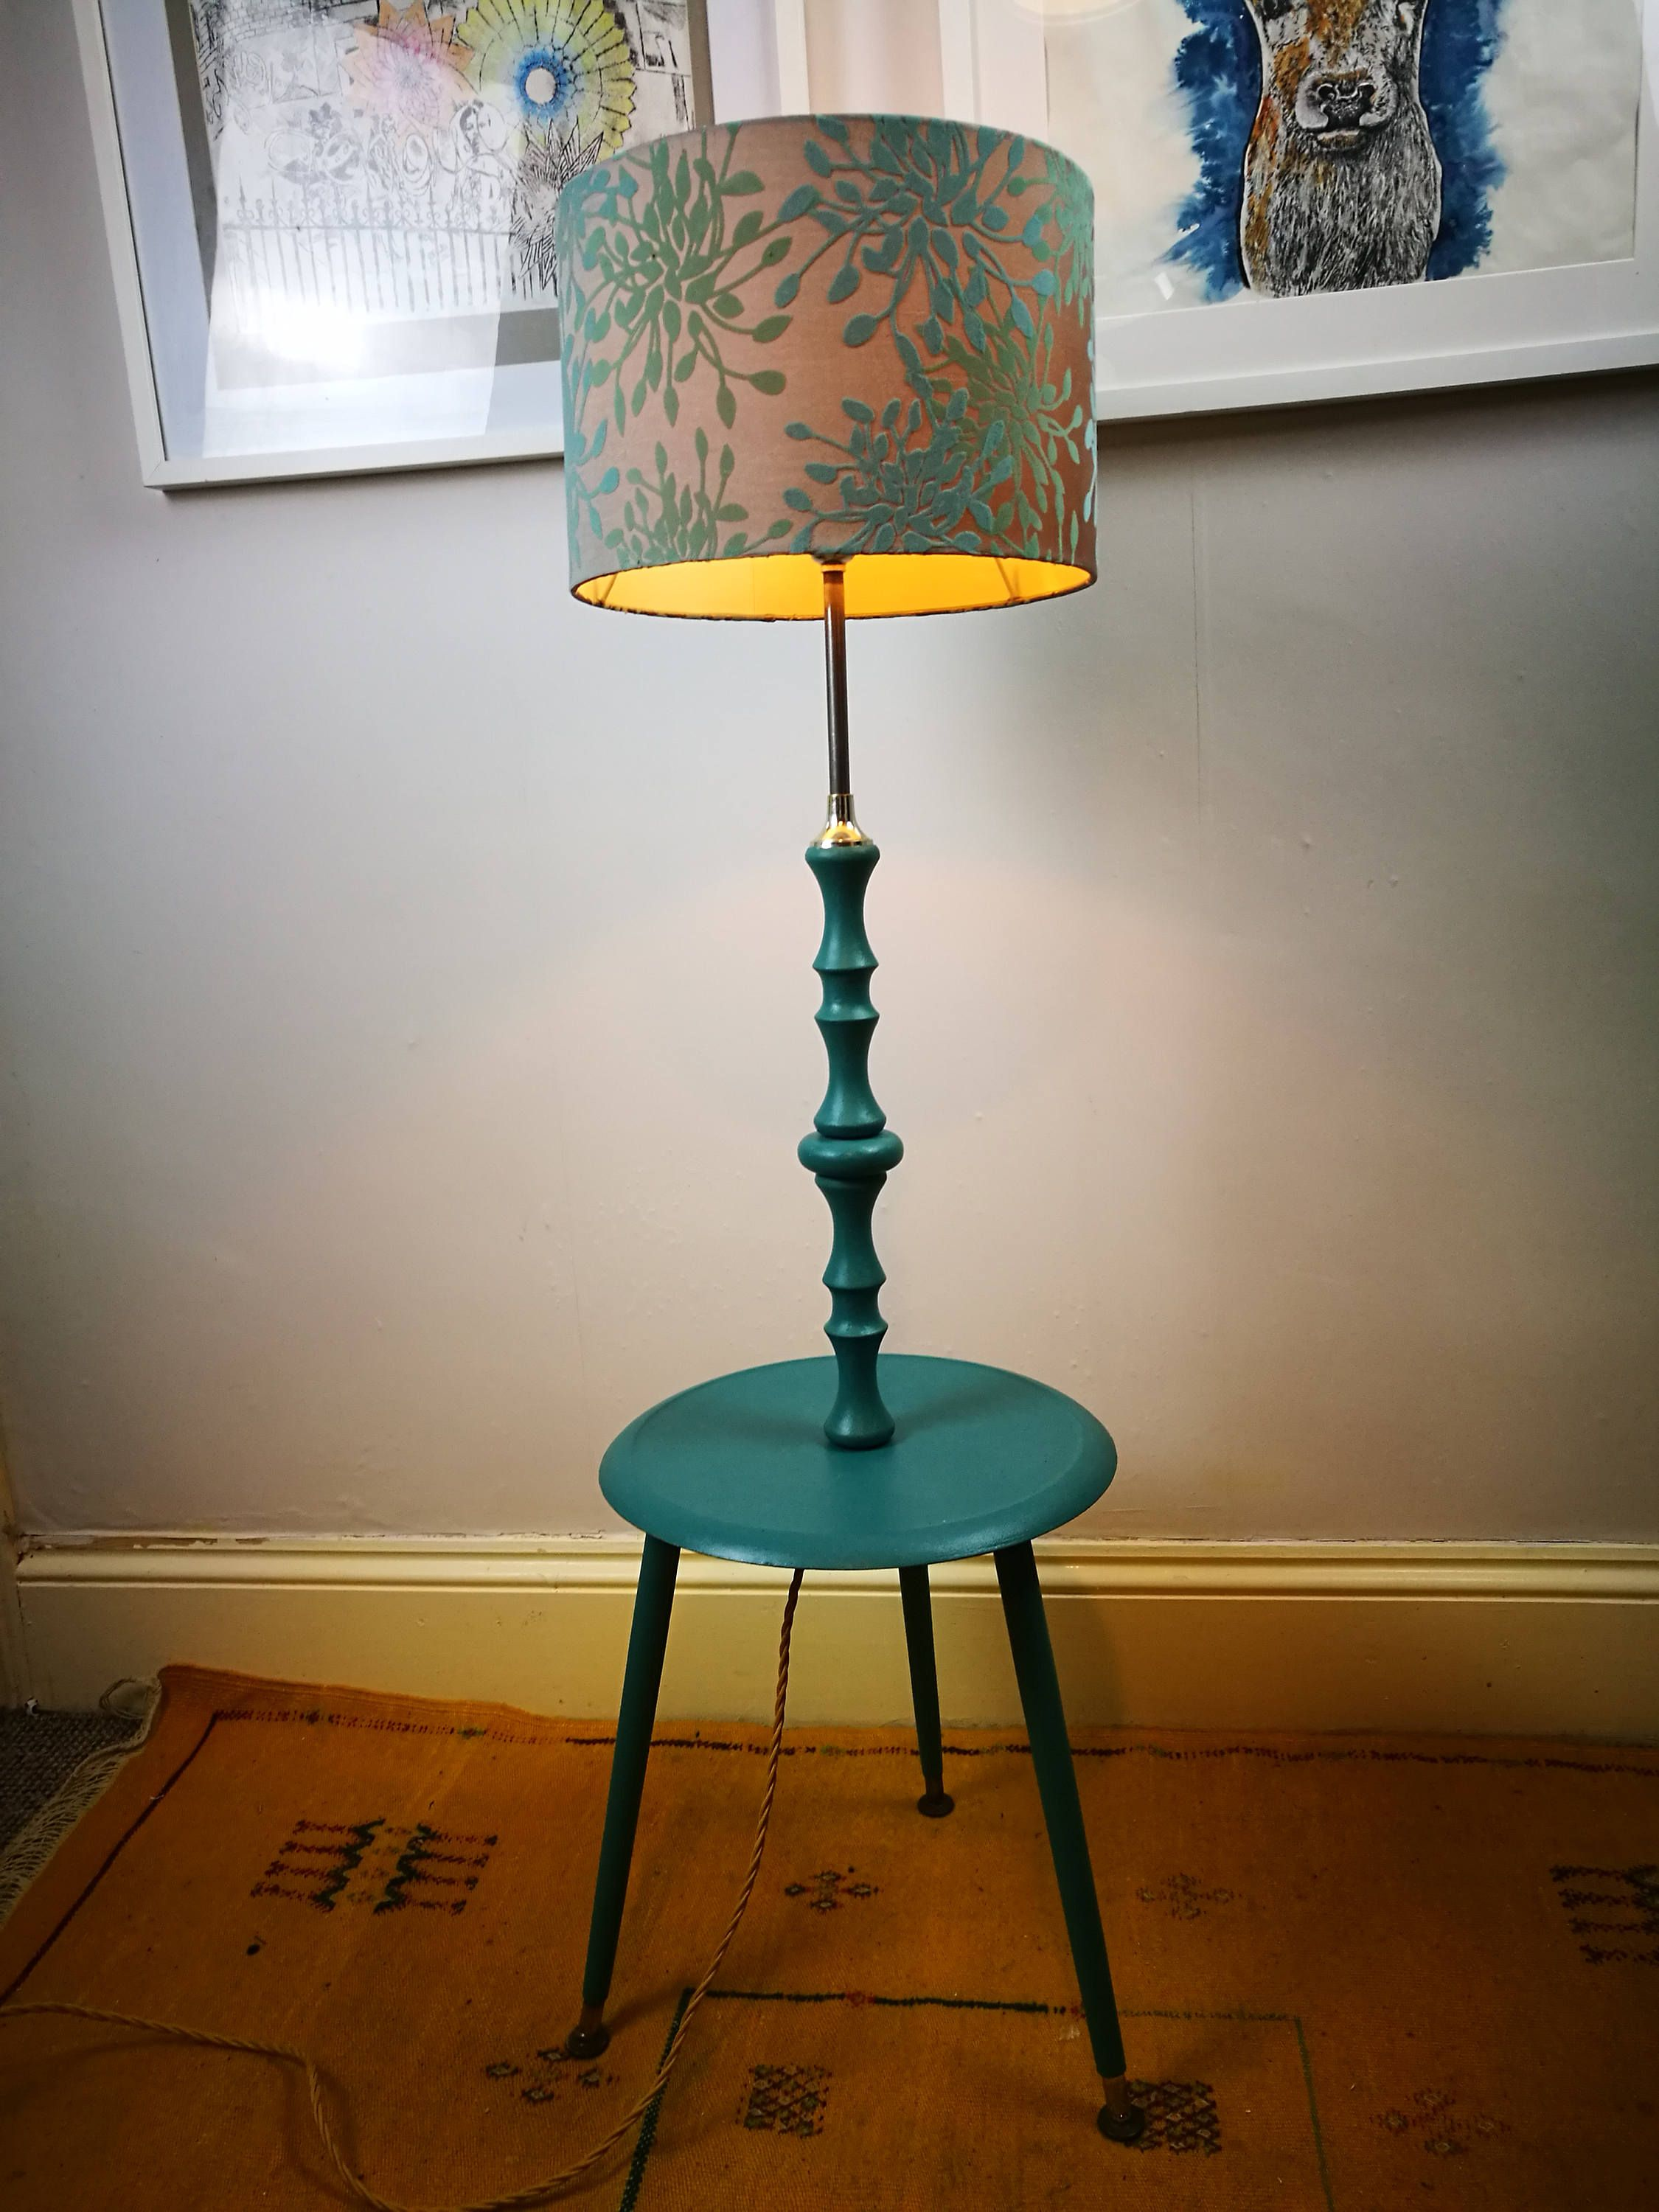 lantern home similar deco box pin etsy items lamp design decor table bedside lamps wood accent art to on wooden